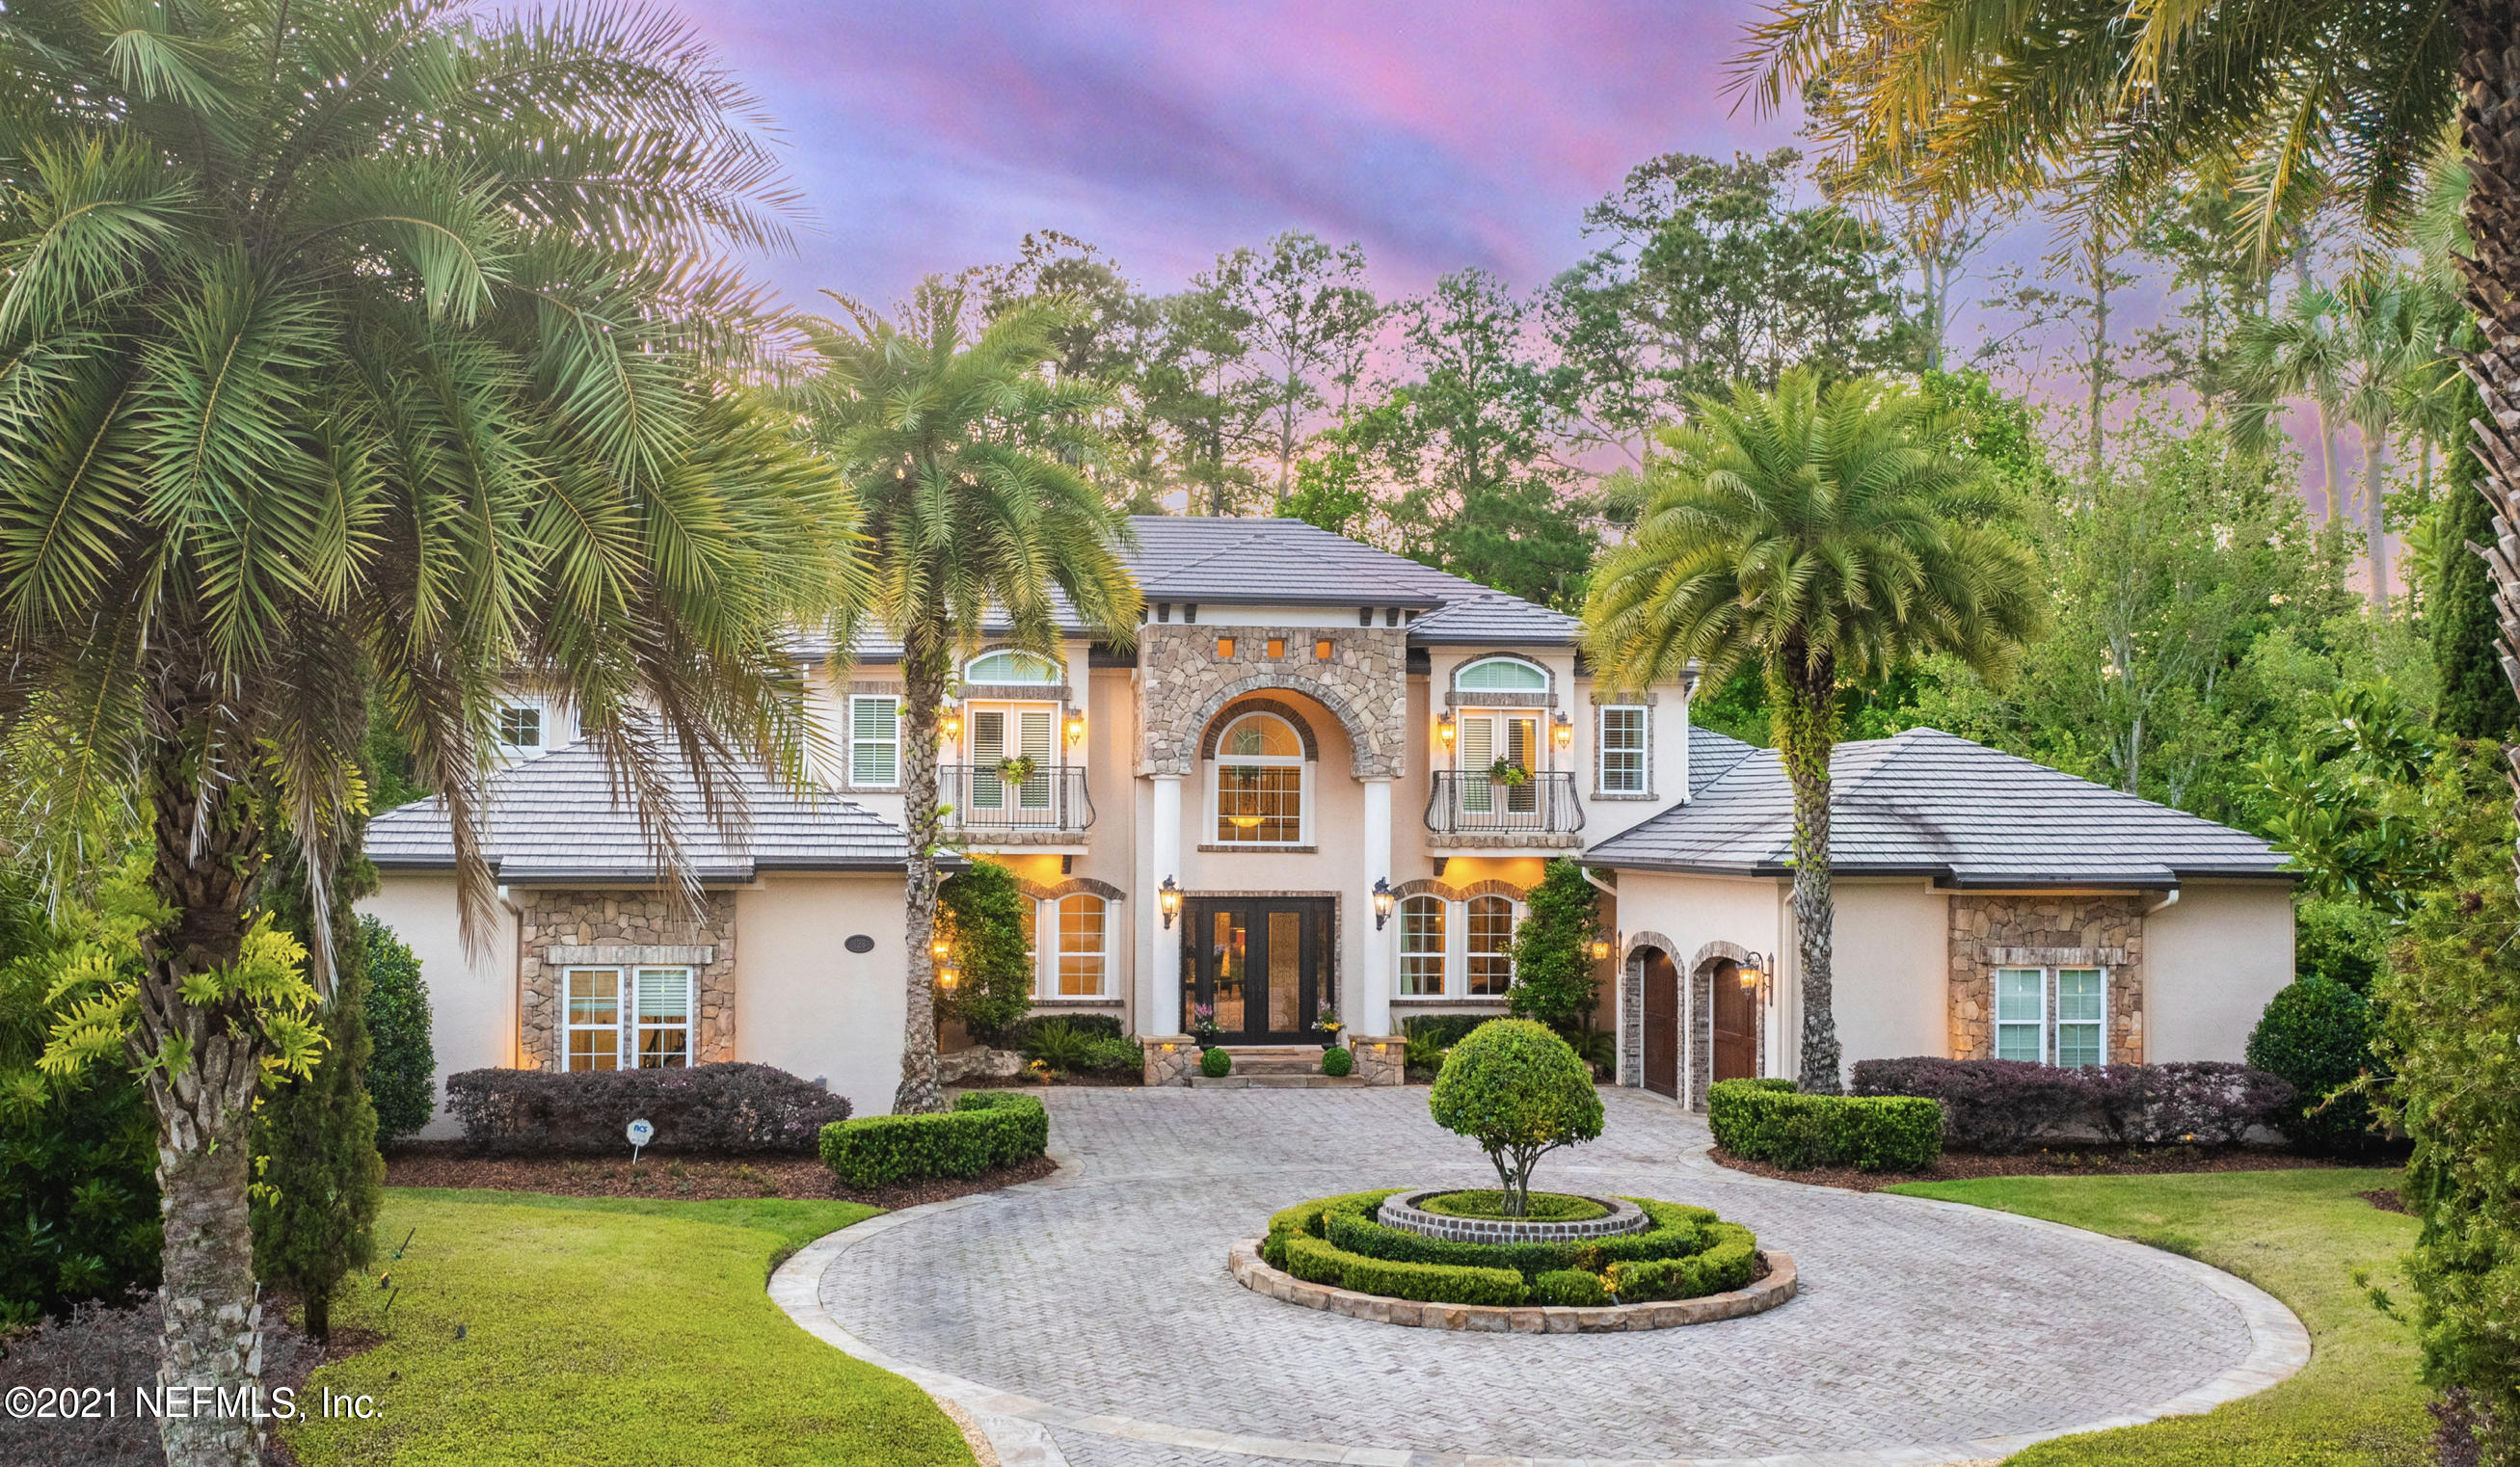 A stunning custom estate in one of the most prestigious neighborhoods in Ponte Vedra Beach! The sprawling property backs up to the 7th Fairway of the famous Stadium Course. Features you'll love -- screened in pool, spa + summer kitchen, elegant gourmet kitchen with Wolf/Kitchen Aid appliances, 4 car garage, wrap around drive, private cul-de-sac locale, and so much more.Immediately fall in love with the grand curved entry staircase, living areas with plenty of space to entertain, fully equipped wet bar, and thoughtfully designed living quarters featuring radiant heat flooring in both first floor full baths. Live just steps away from one of the most sought after courses in the country and a quick golf cart ride to putting your toes in the sand.